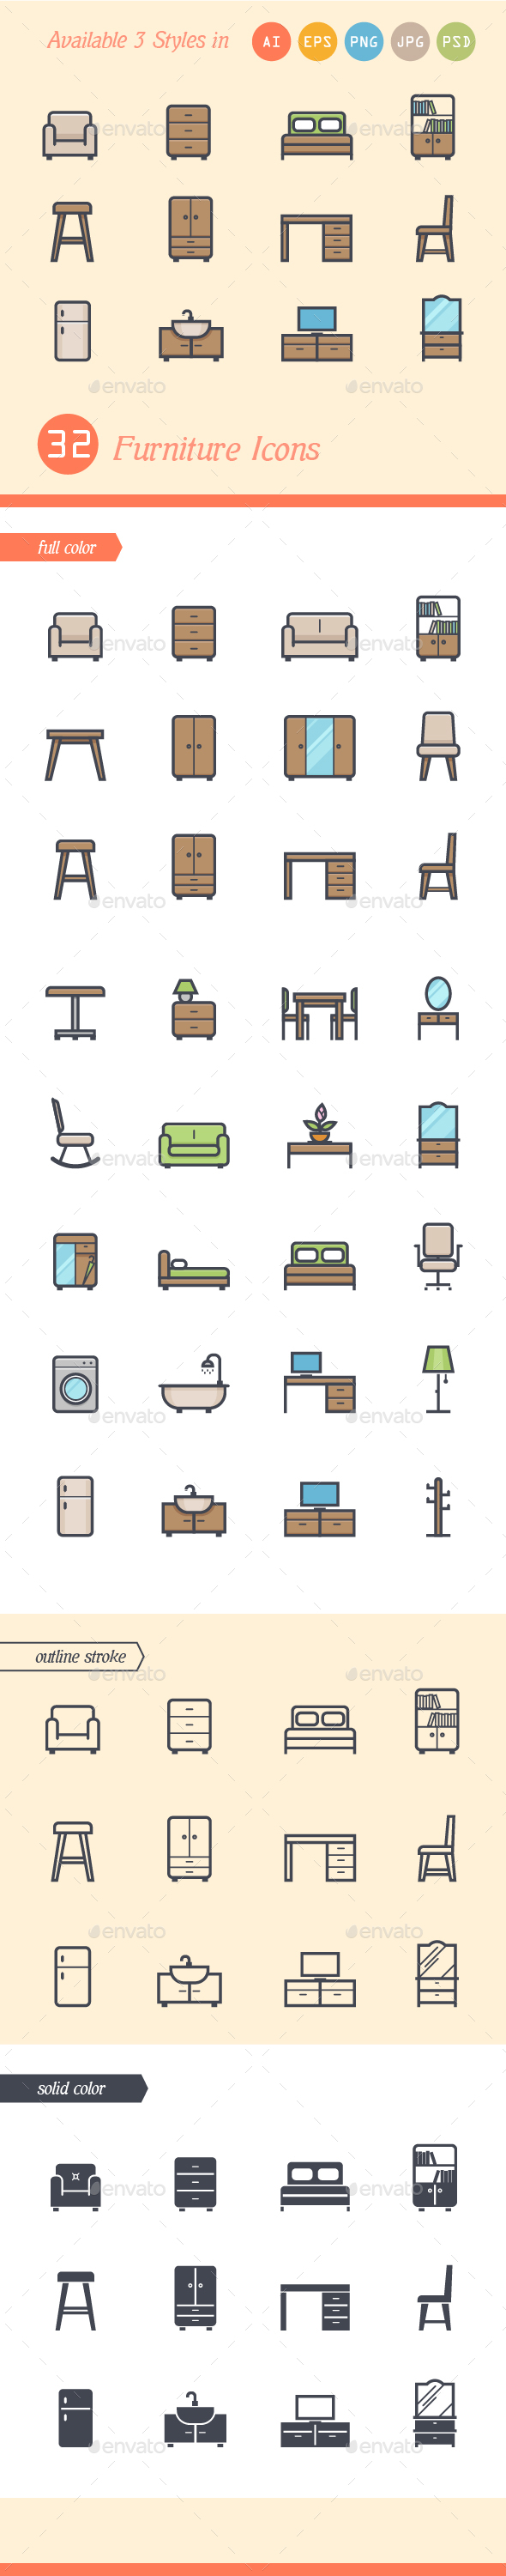 Set of 3 Styles Furniture Icons - Man-made objects Objects